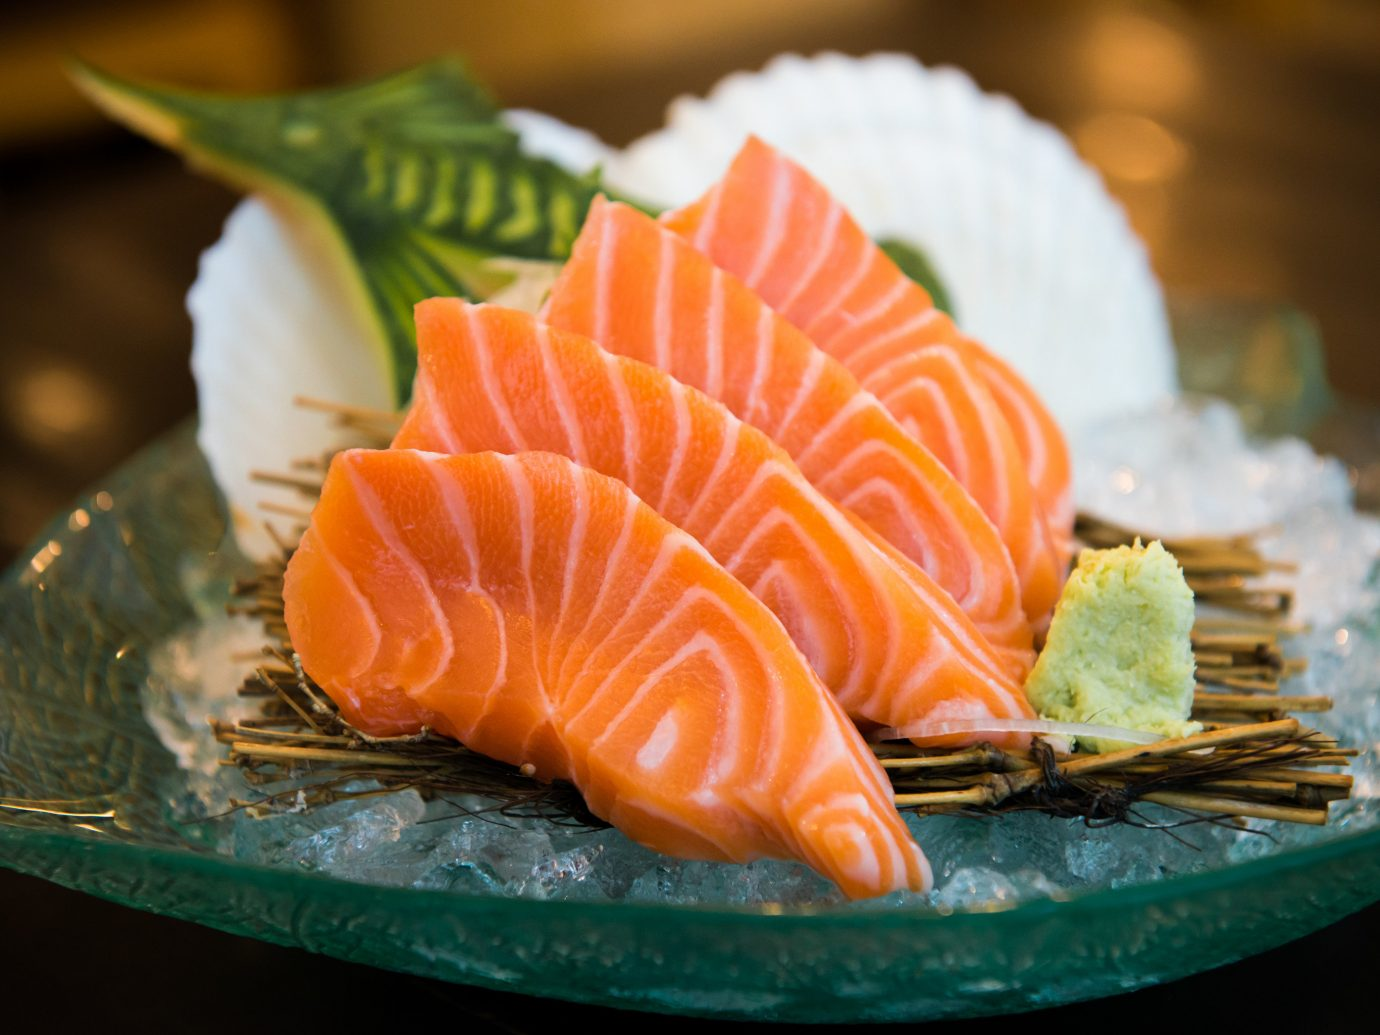 Trip Ideas plate food dish sashimi slice indoor cuisine bowl fruit asian food plant sushi fish smoked salmon sliced oranges japanese cuisine salmon orange fresh containing